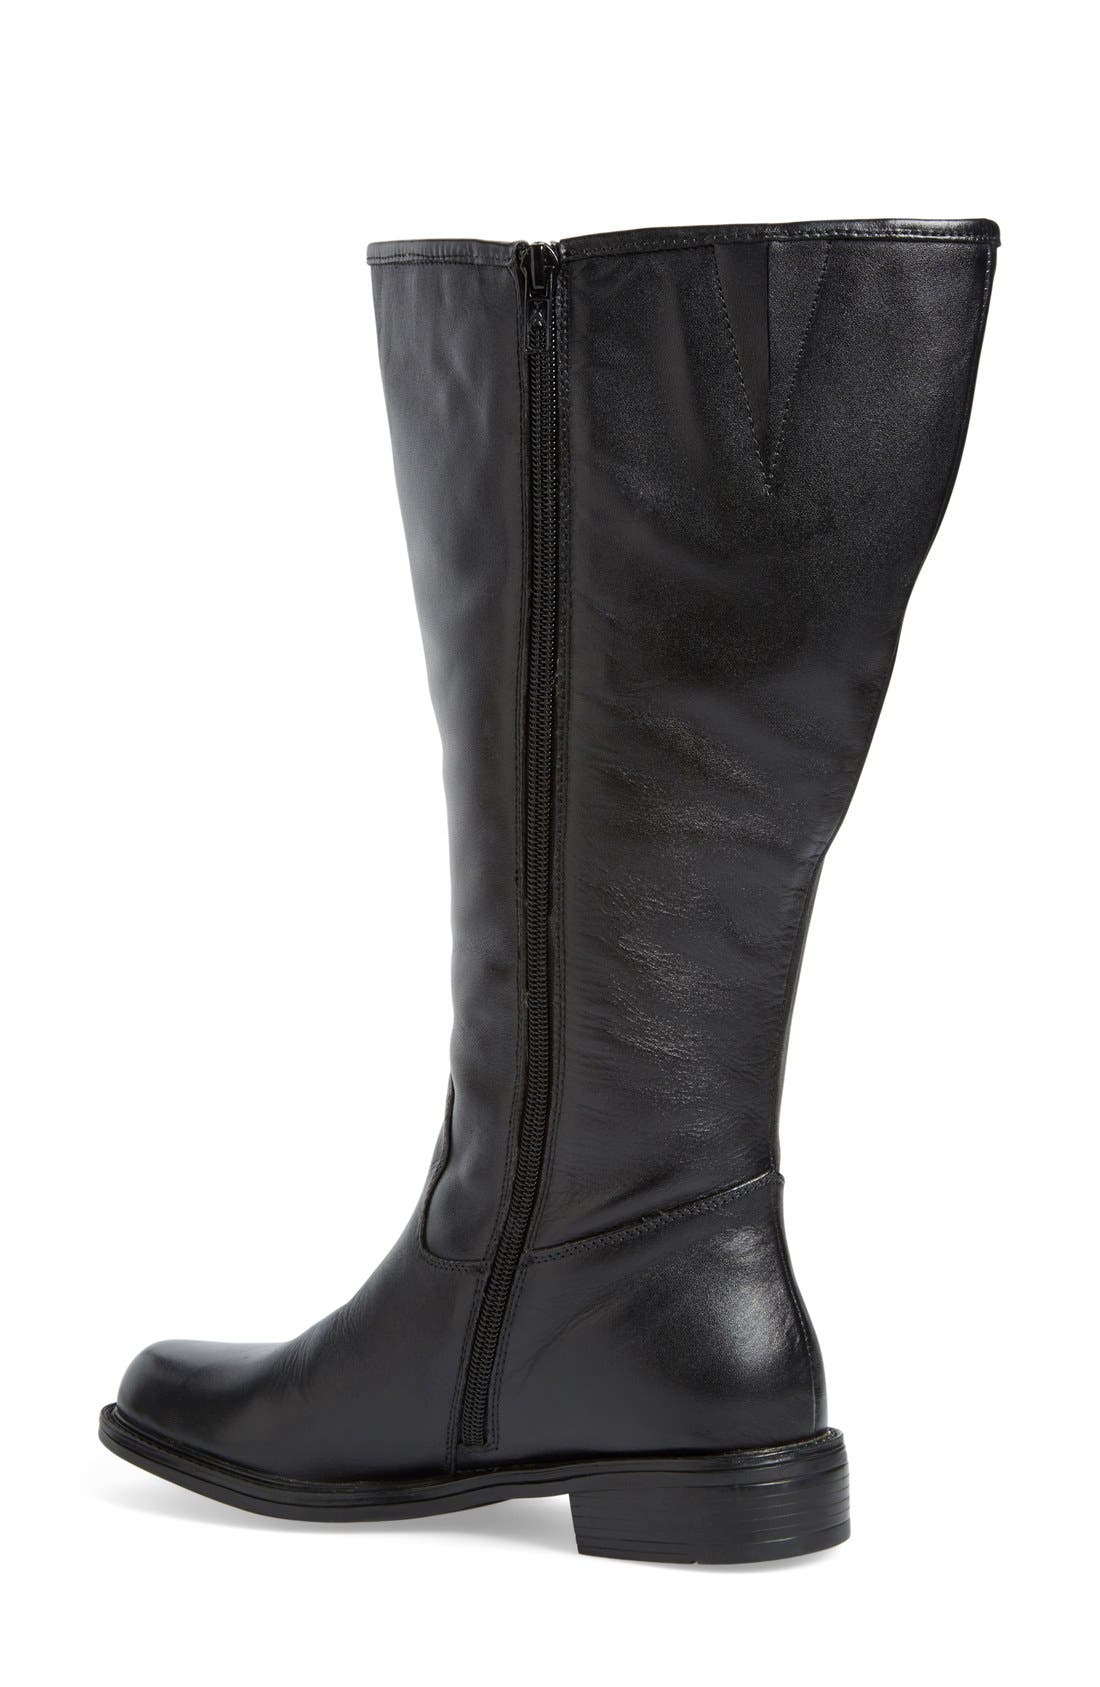 'Best' Calfskin Leather & Suede Boot,                             Alternate thumbnail 18, color,